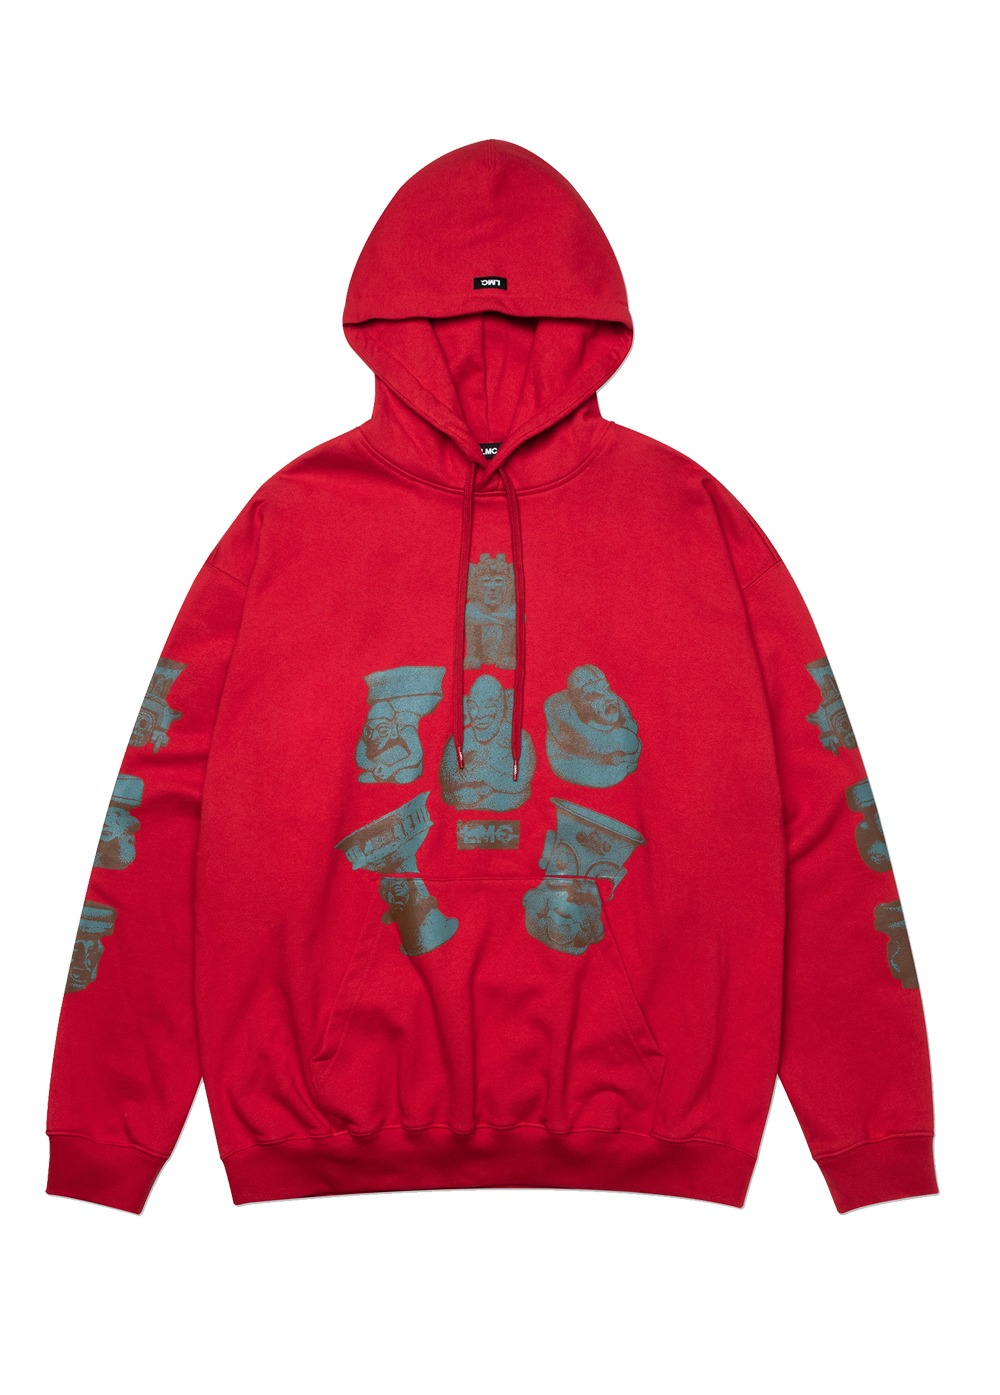 LMC MAYAN RELIC OVERSIZED HOODIE red